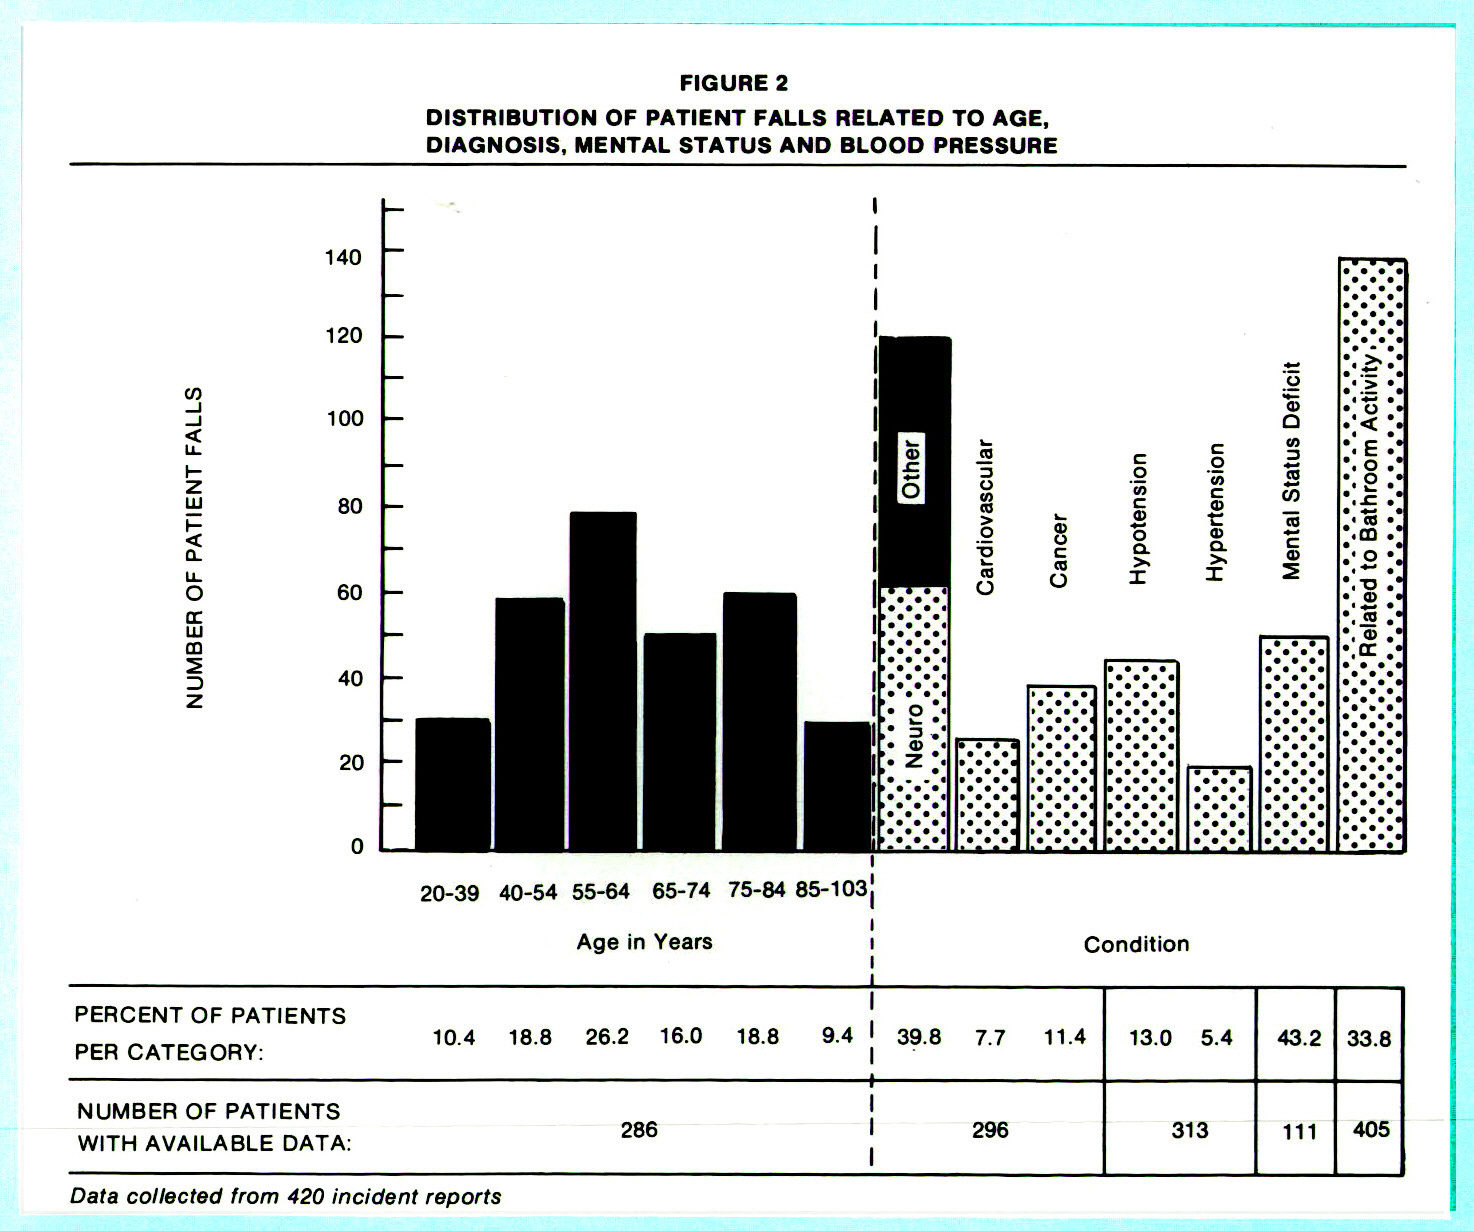 DISTRIBUTION OF PATIENT FALLS RELATED TO AGE, DIAGNOSIS, MENTAL STATUS AND BLOOD PRESSURE